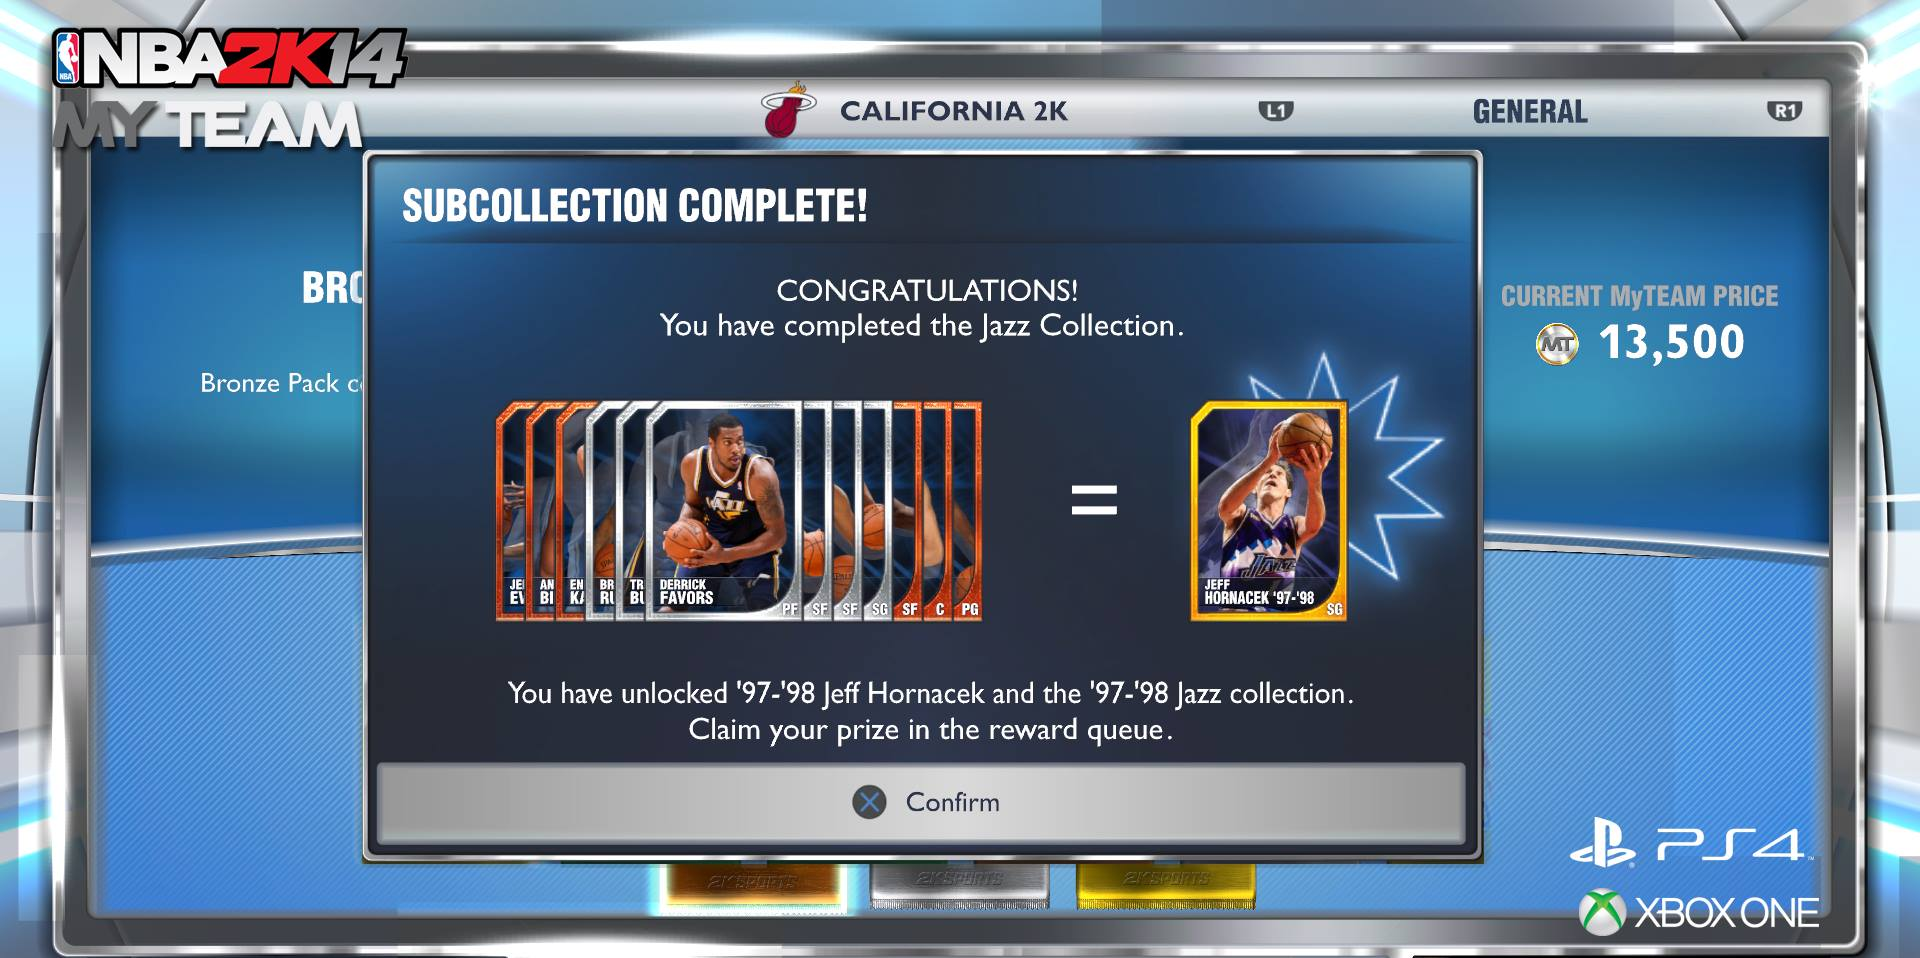 NBA 2K14 Next Gen: Full Collection in MyTEAM